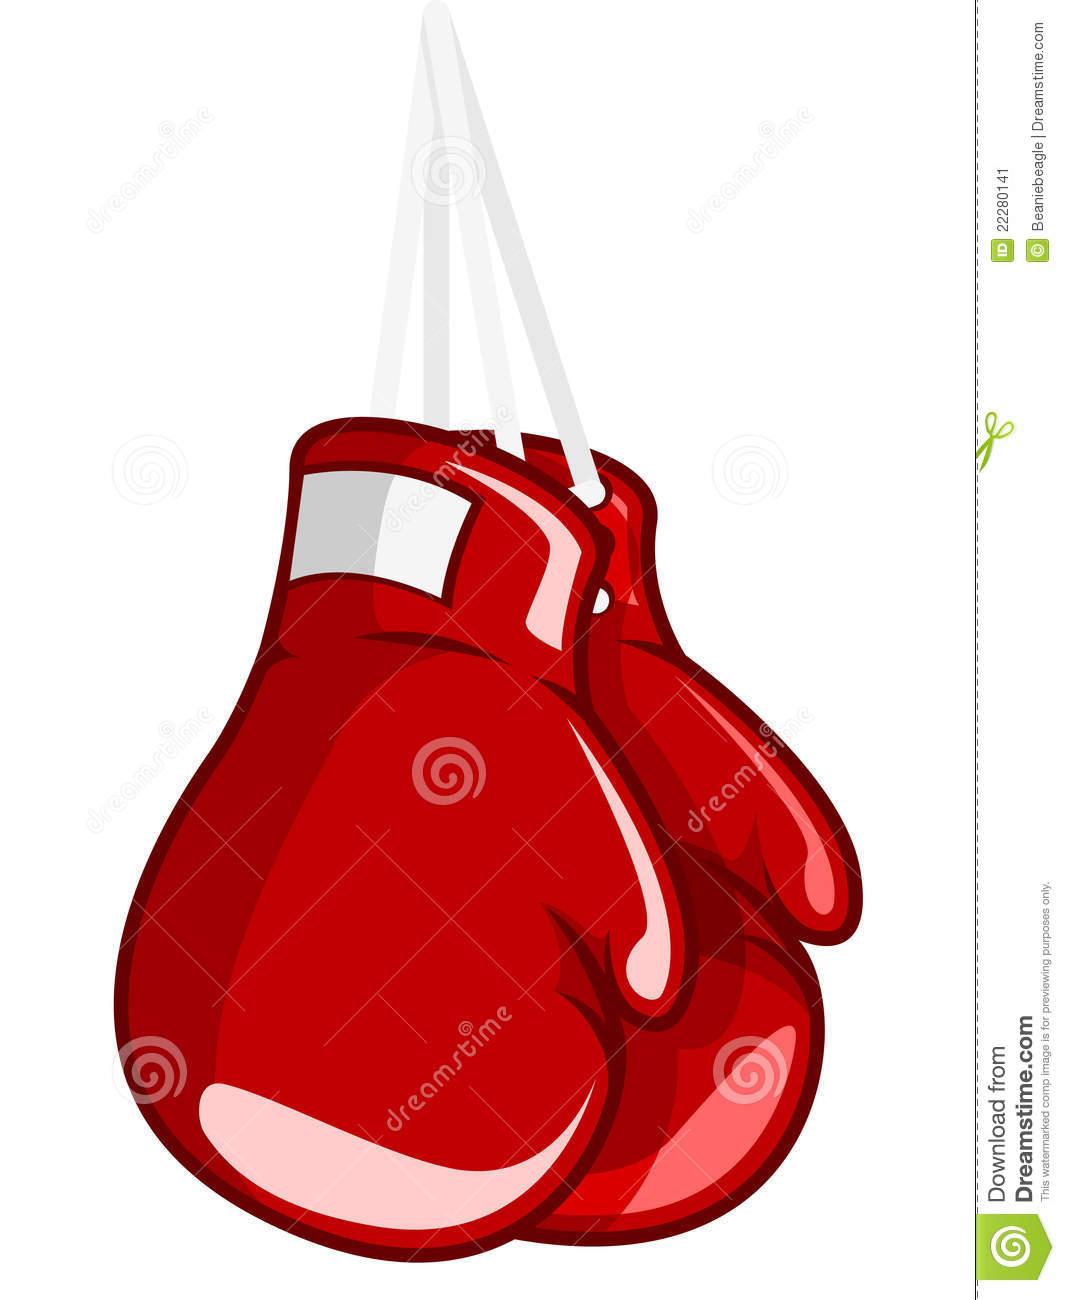 An illustration of a pair of hung up boxing gloves.